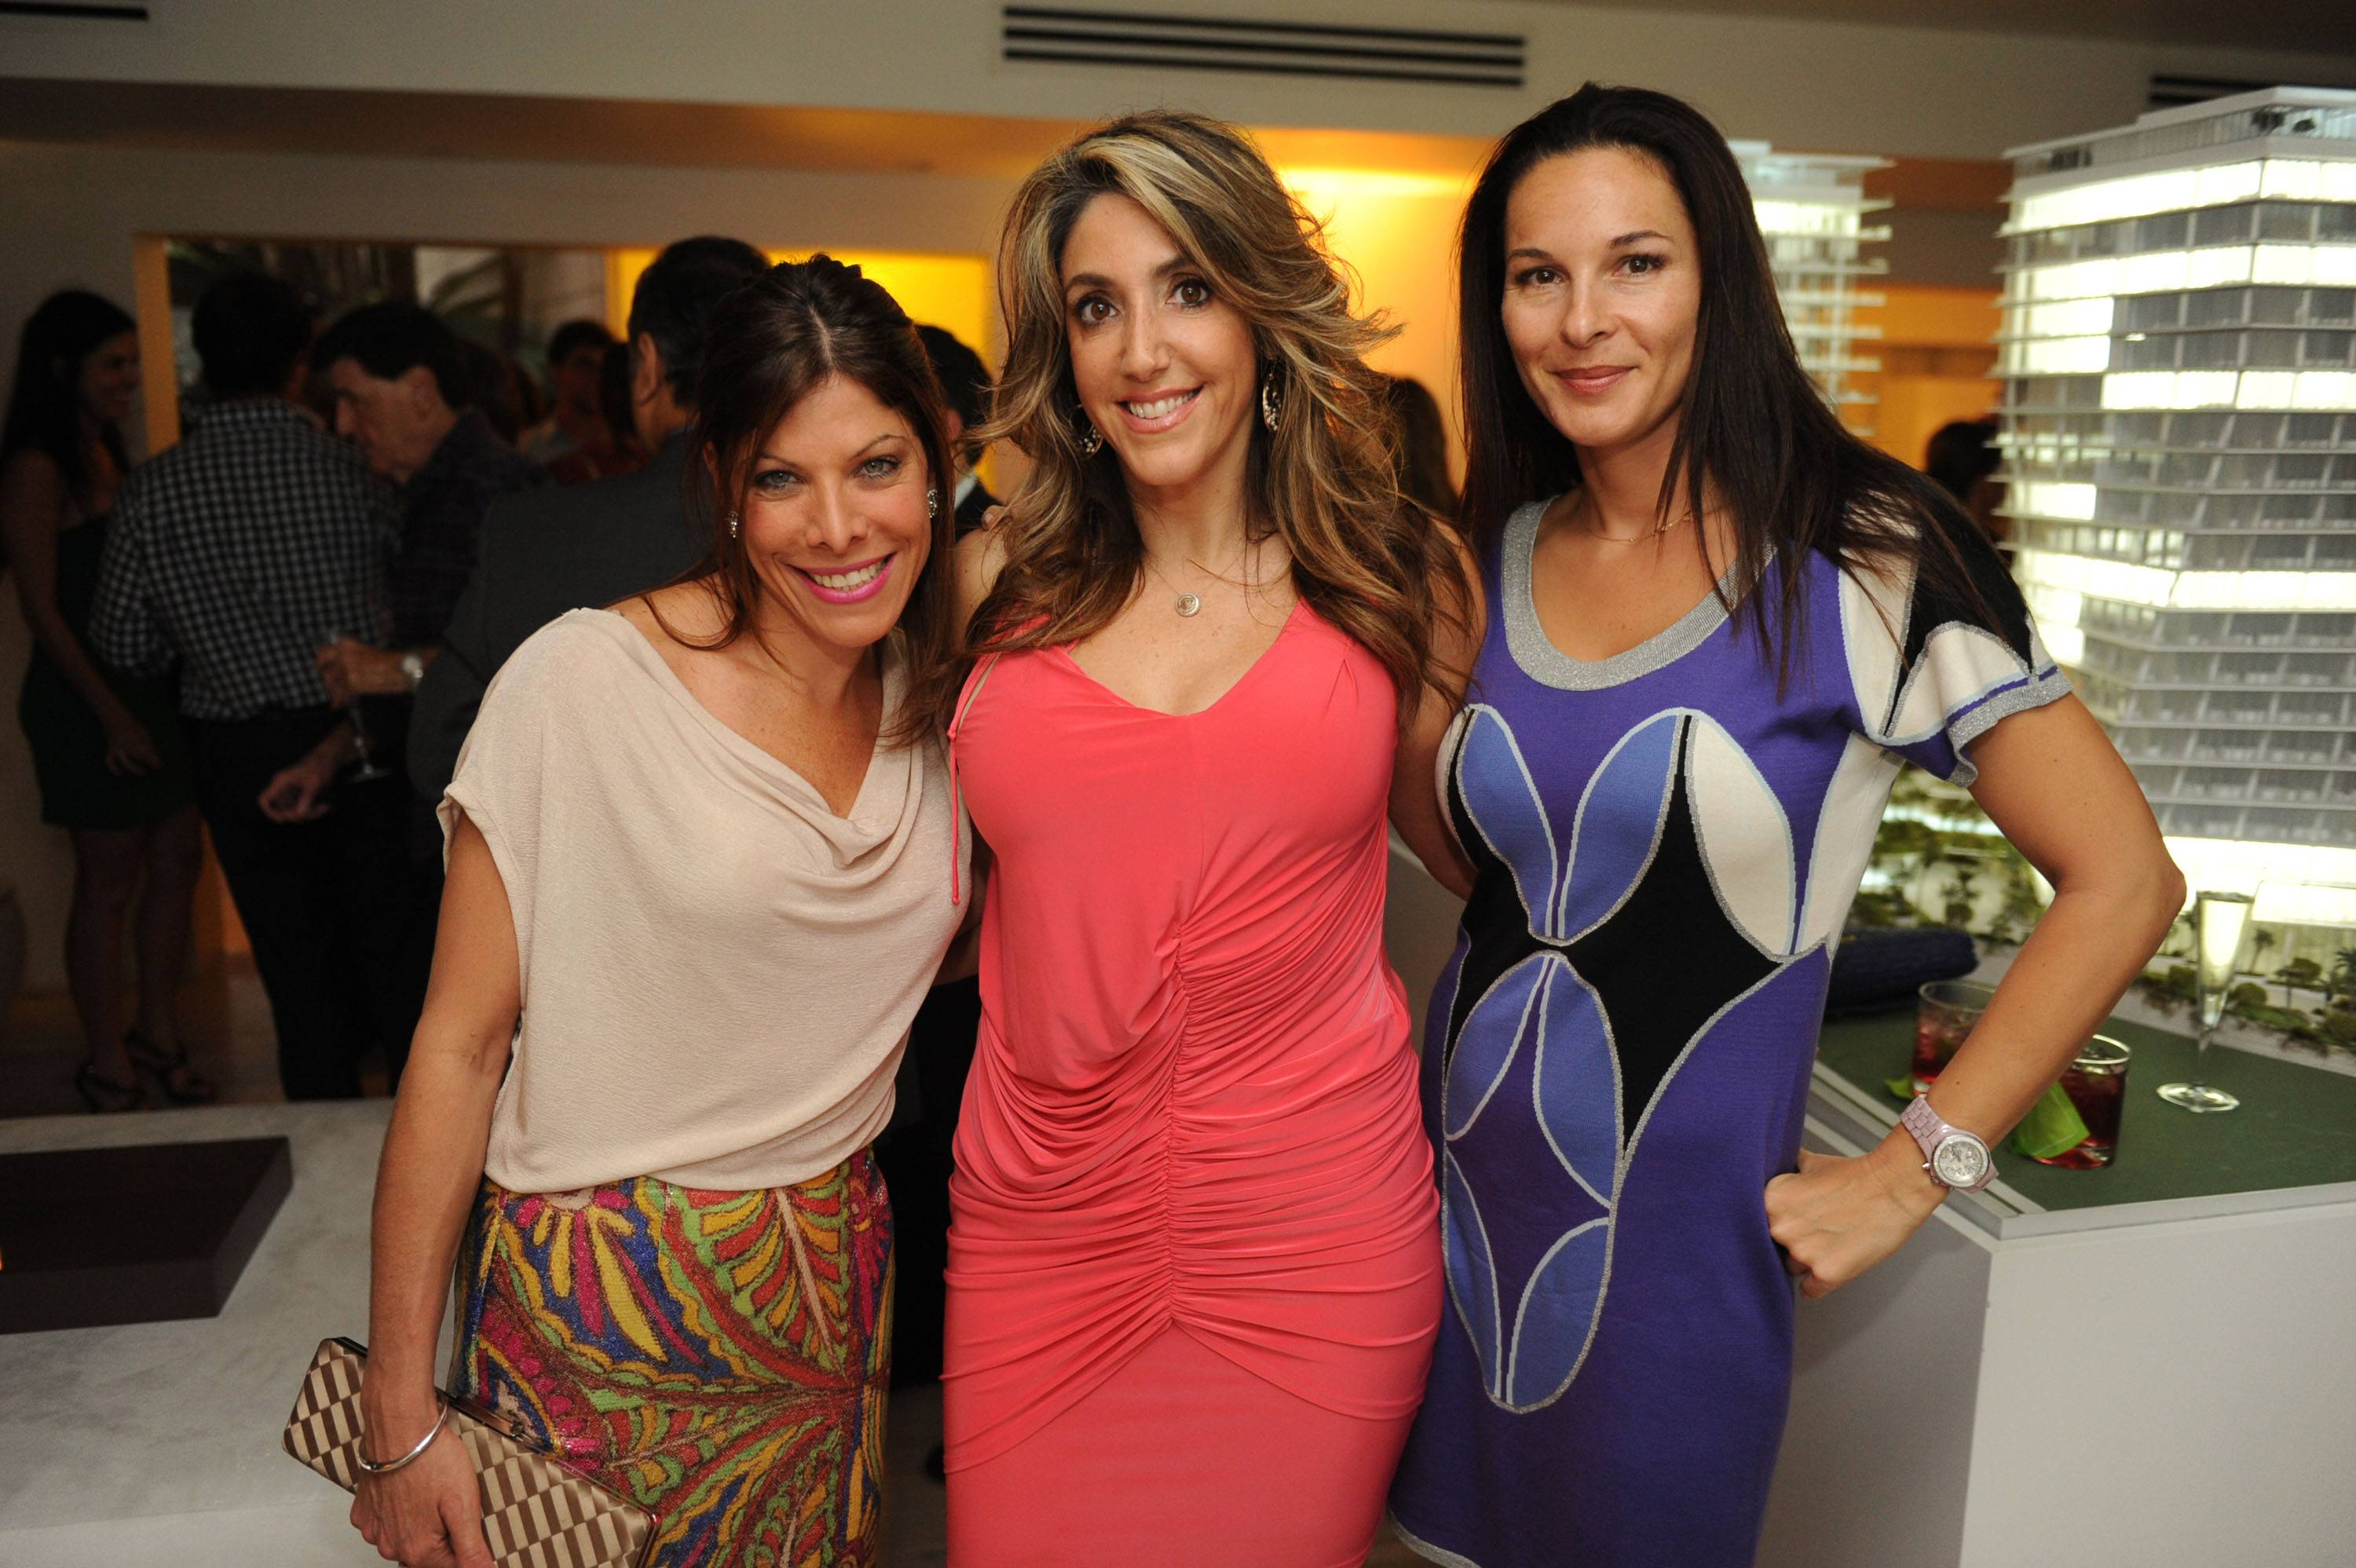 Jennifer Gerson, Jillian Jacobson, & Nathasha Dubarry